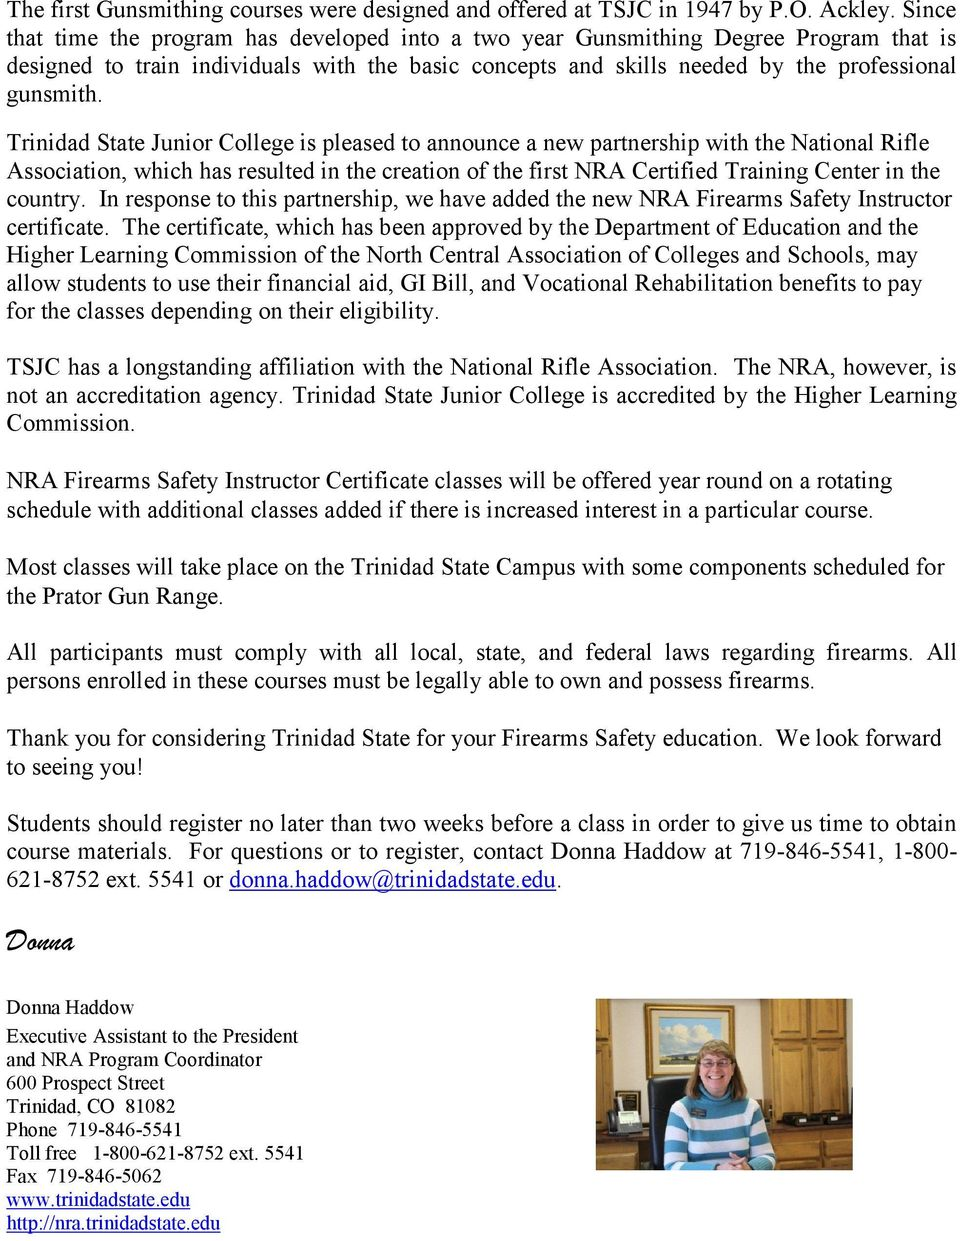 Trinidad State Junior College is pleased to announce a new partnership with the National Rifle Association, which has resulted in the creation of the first NRA Certified Training Center in the